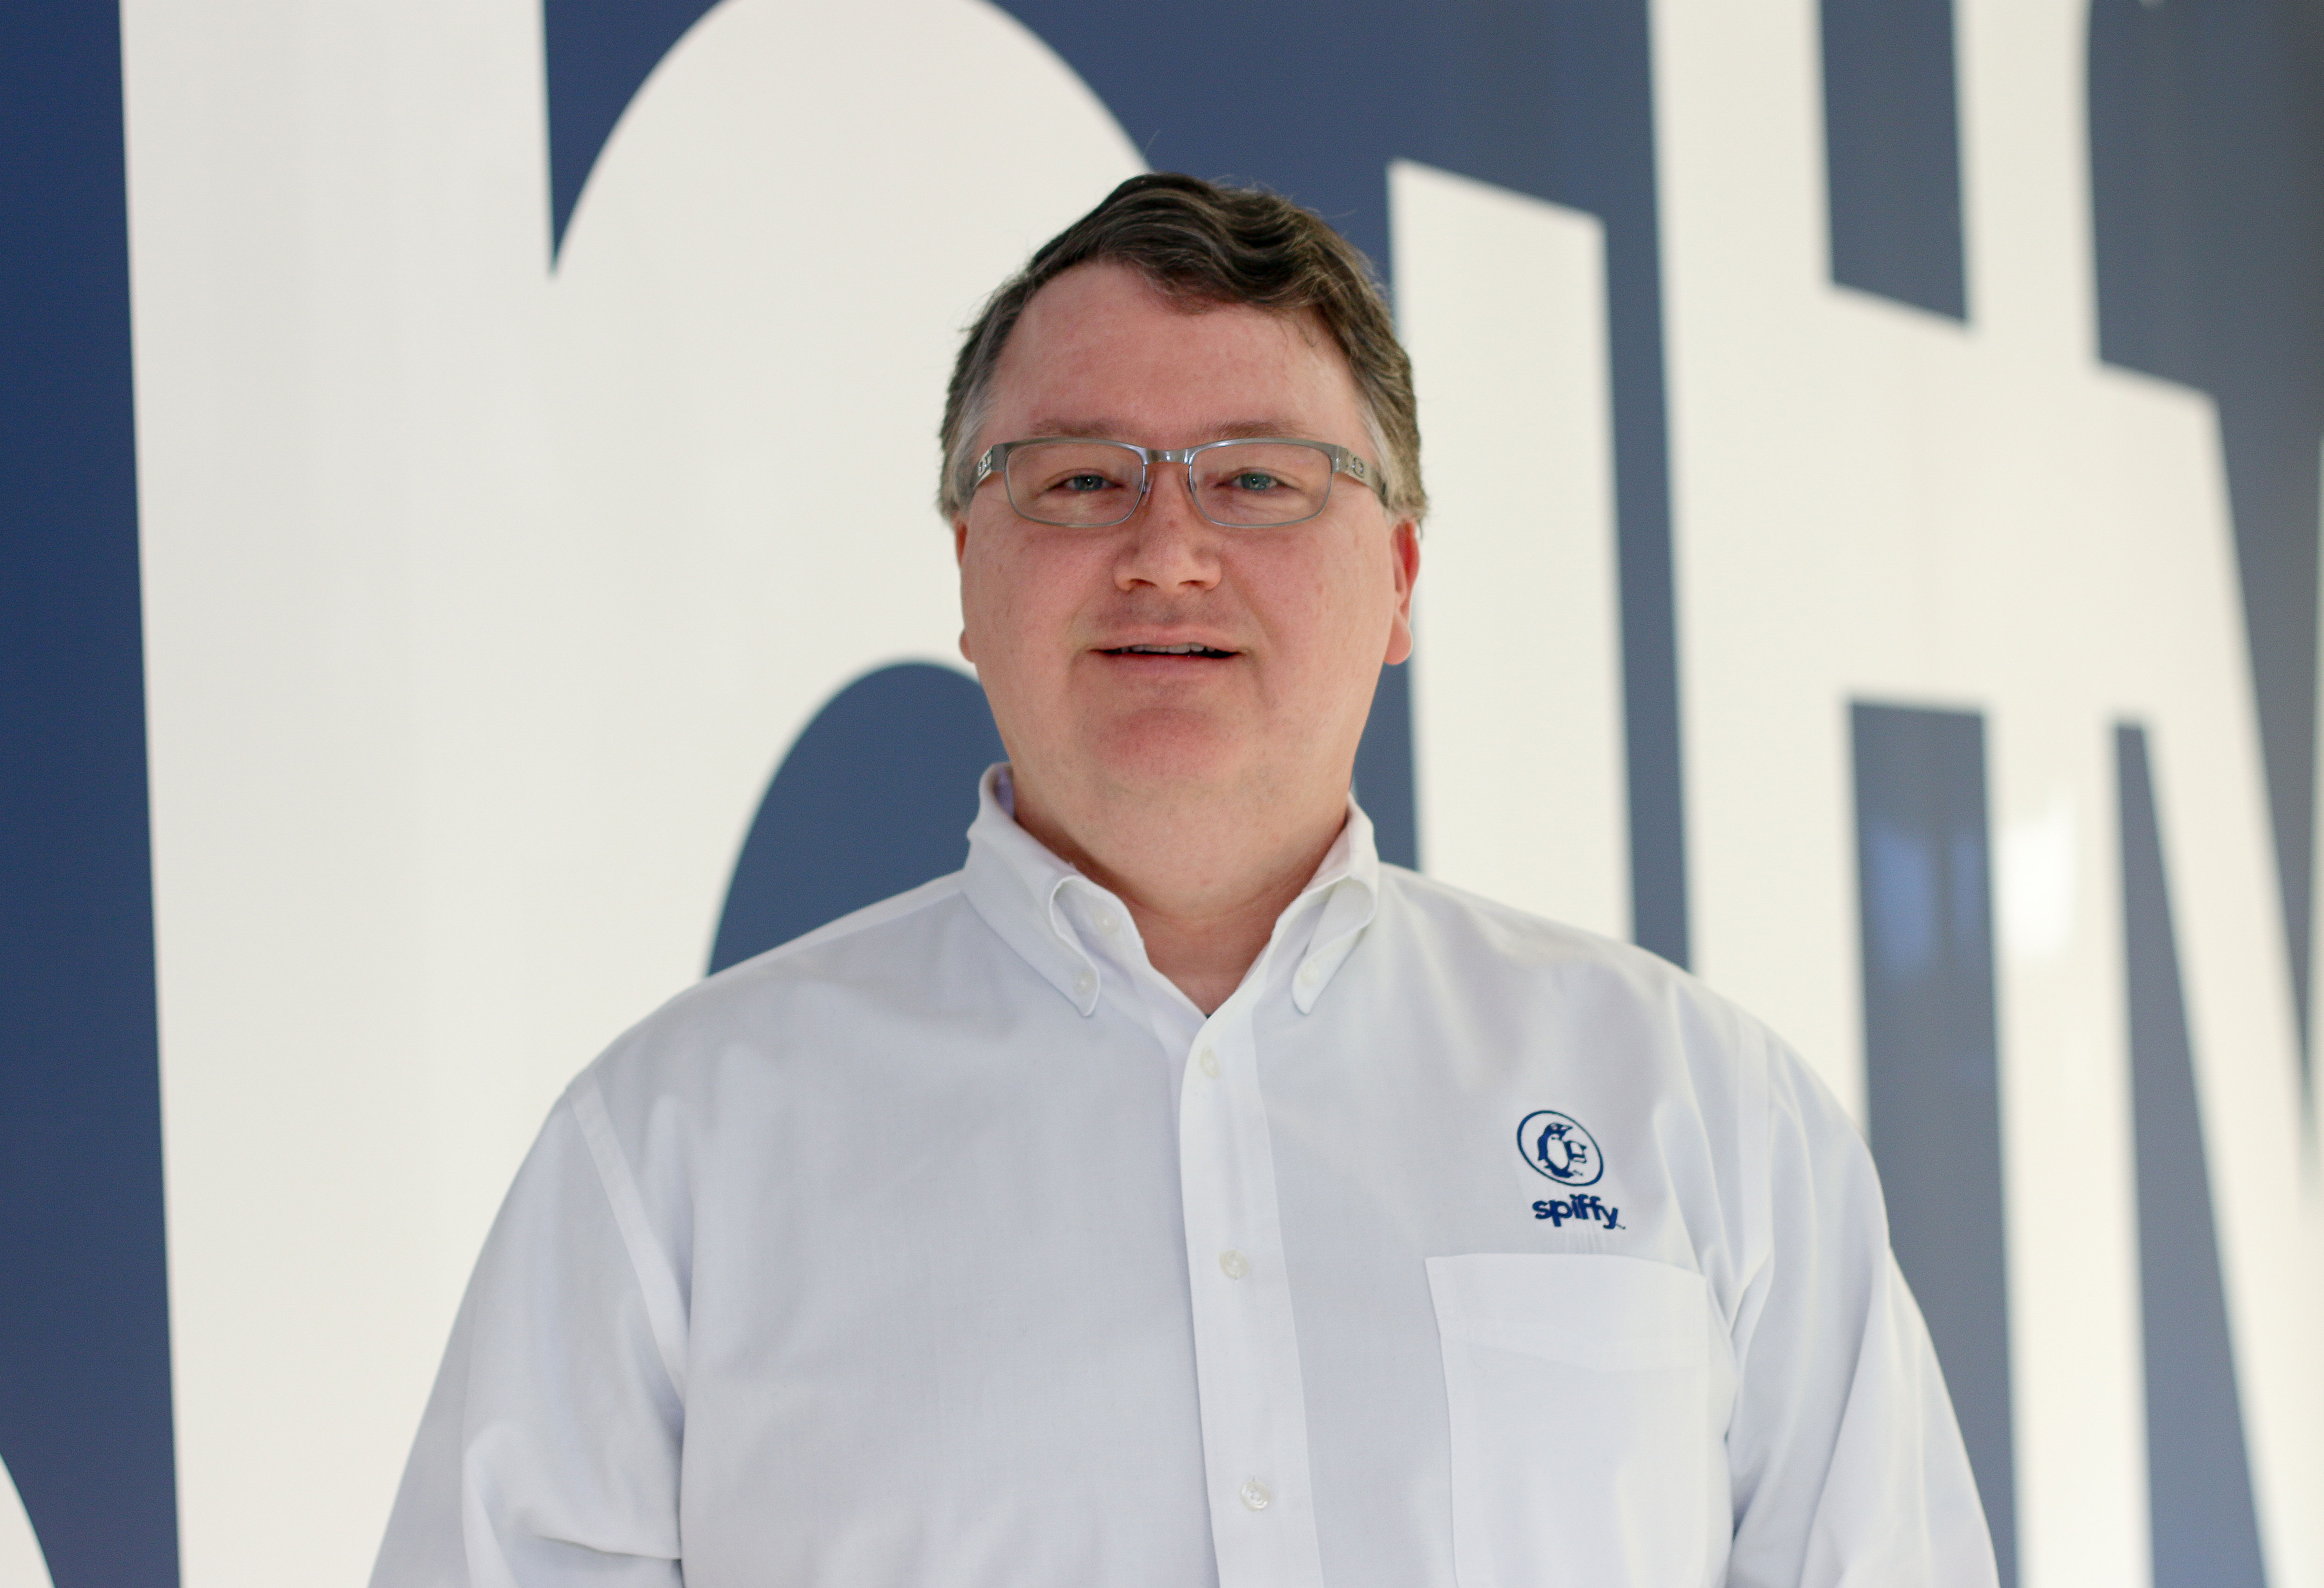 Scot Wingo Spiffy CEO and Co-founer